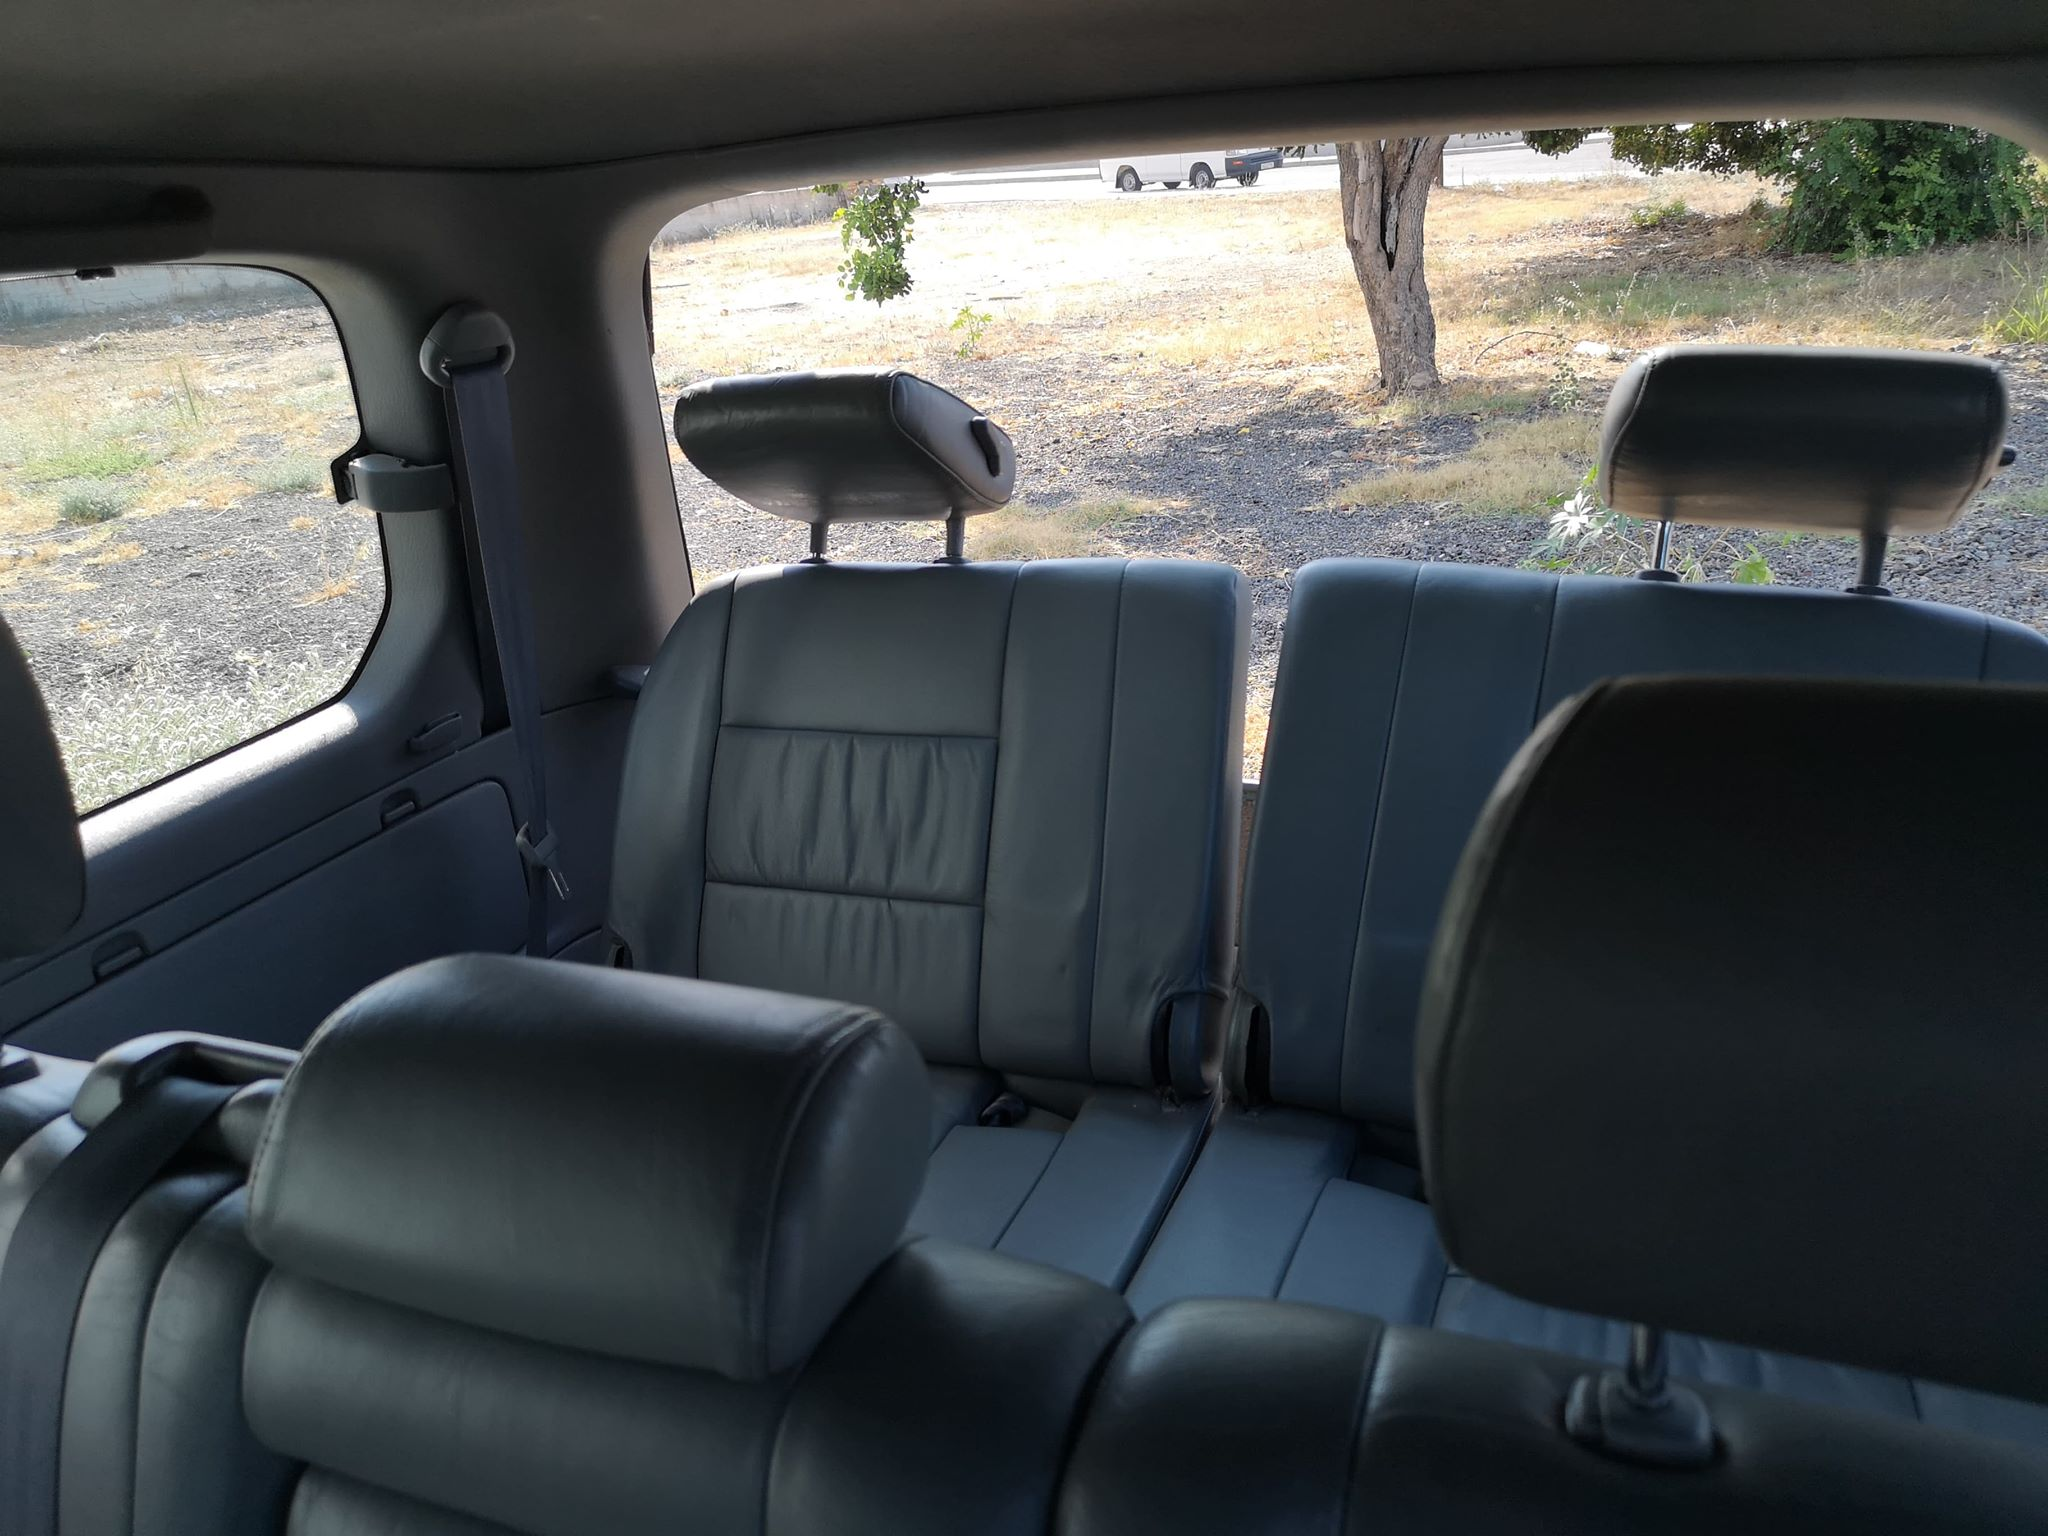 Toyota Land Cruiser 100 – Series 2002 – 7 Seats